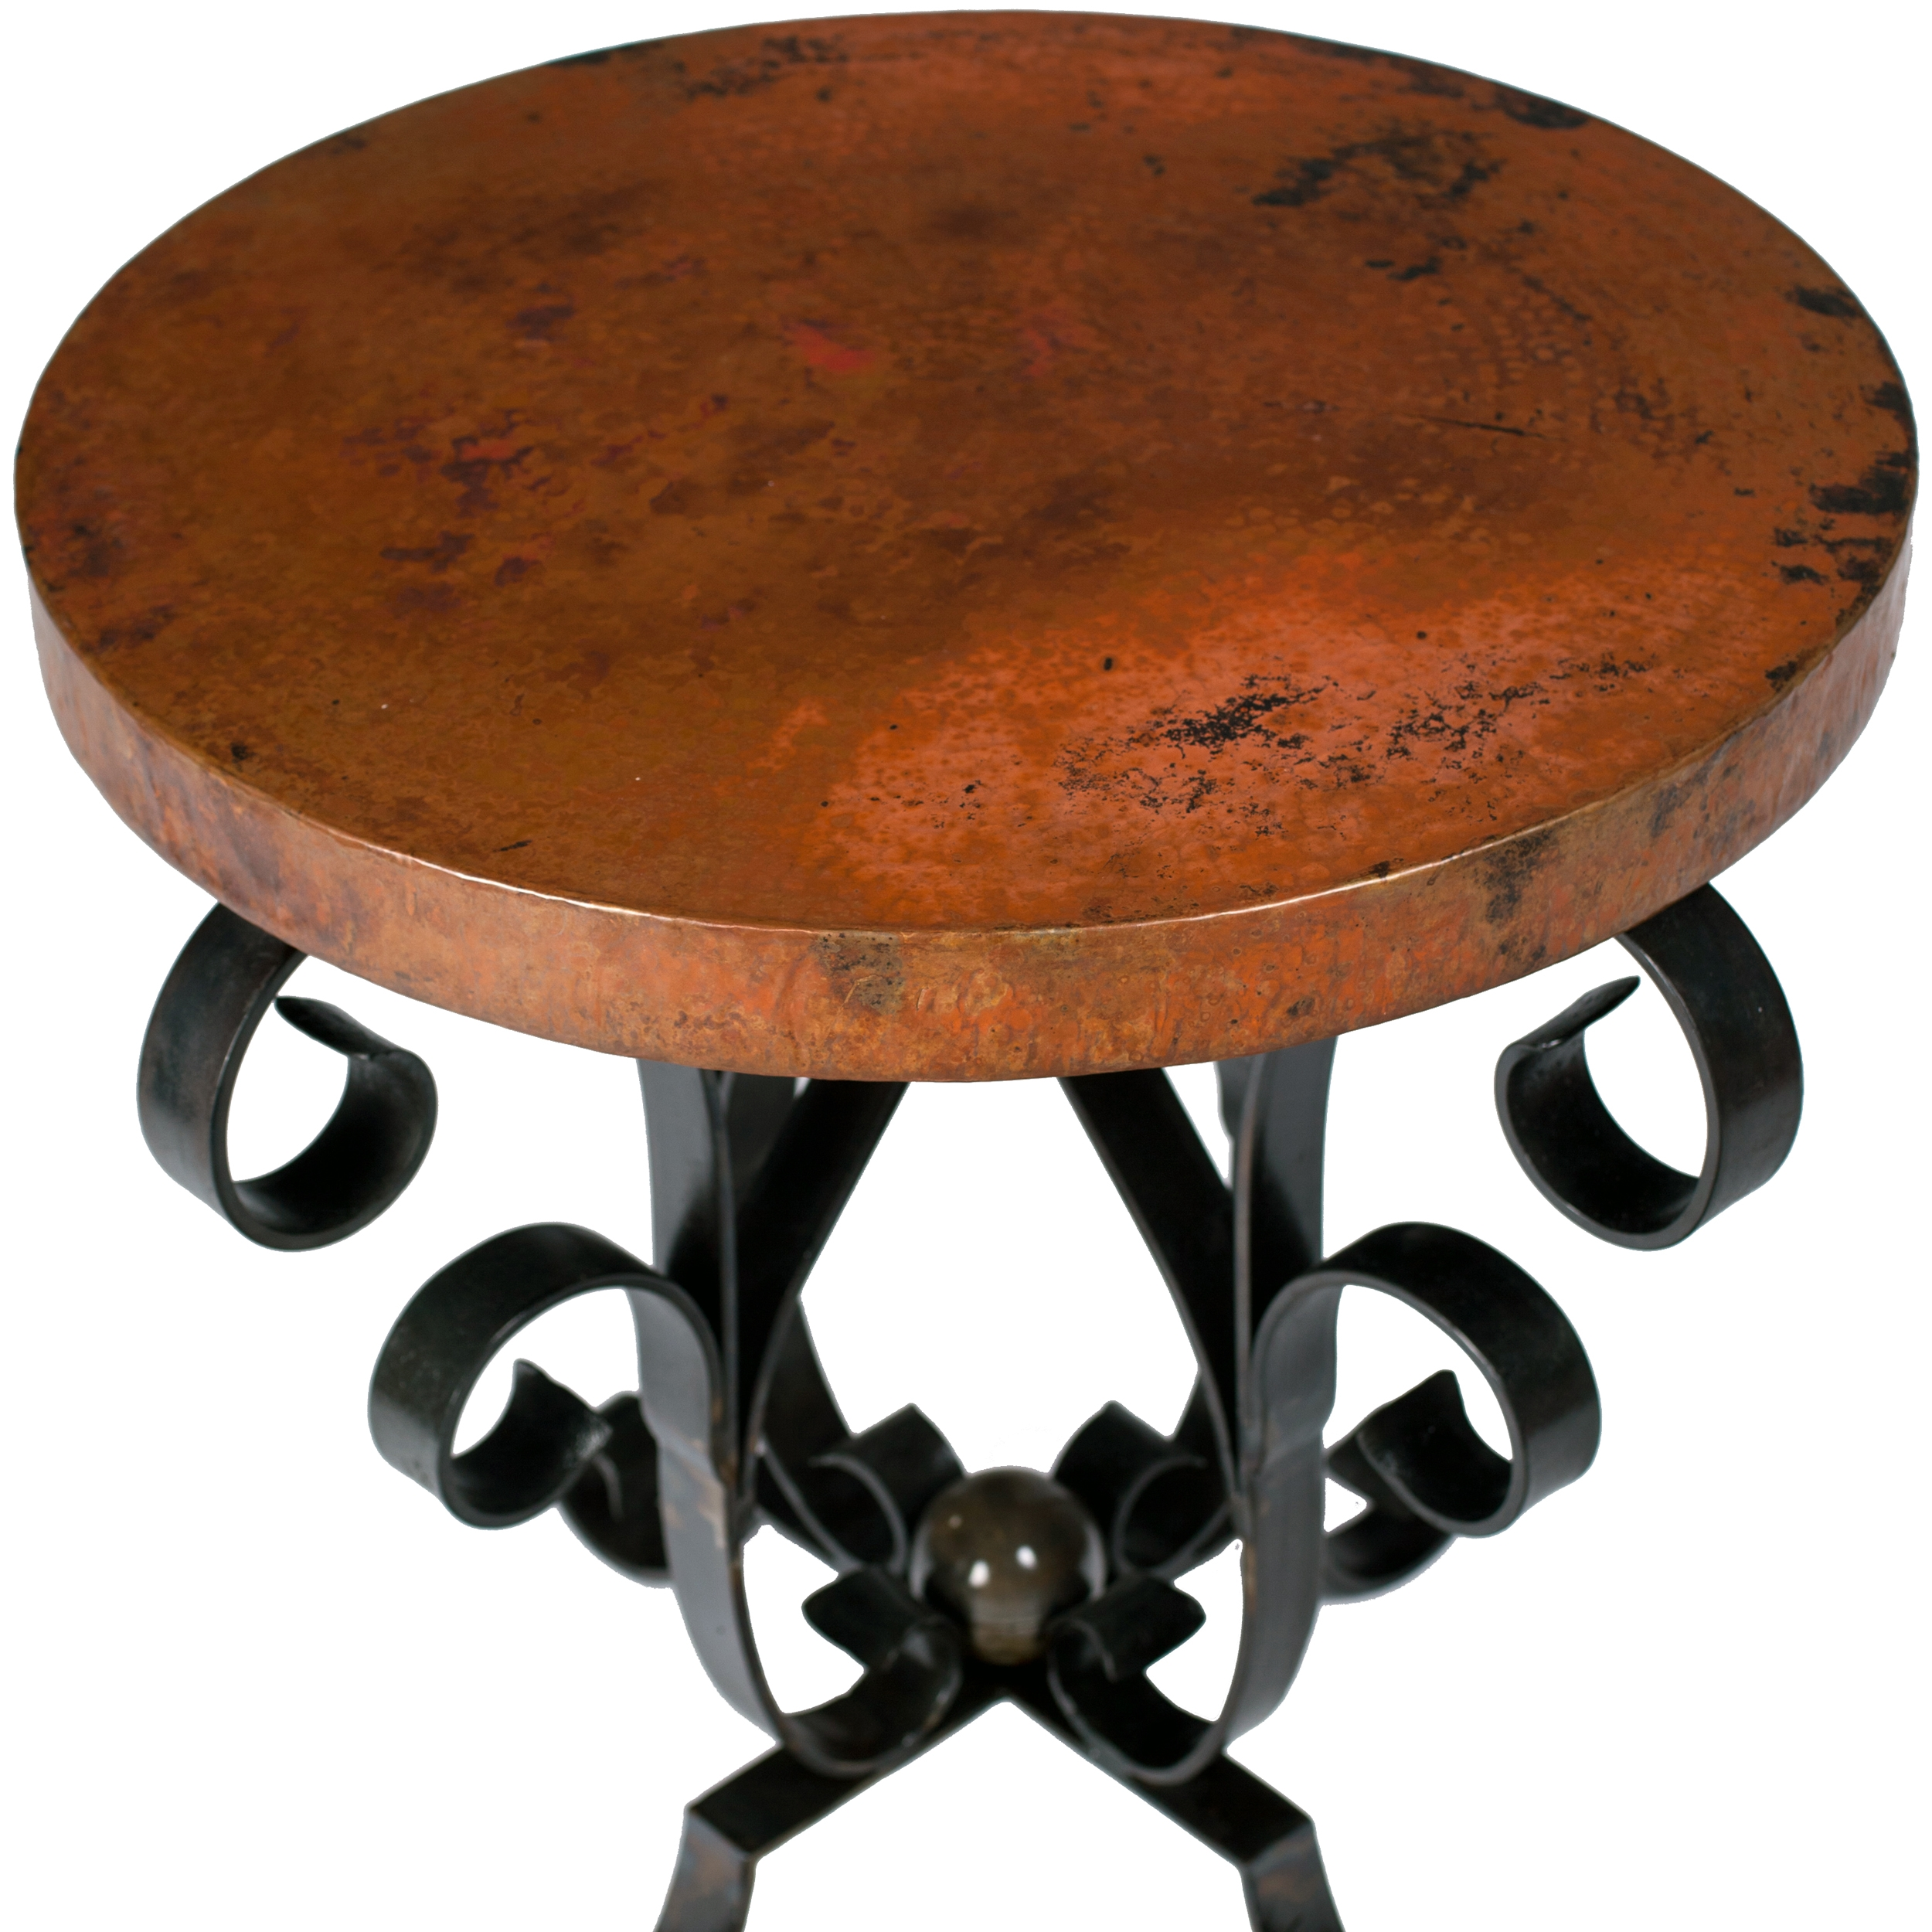 Iron Scroll Accent Table With Hammered Copper Top - Copper top accent table